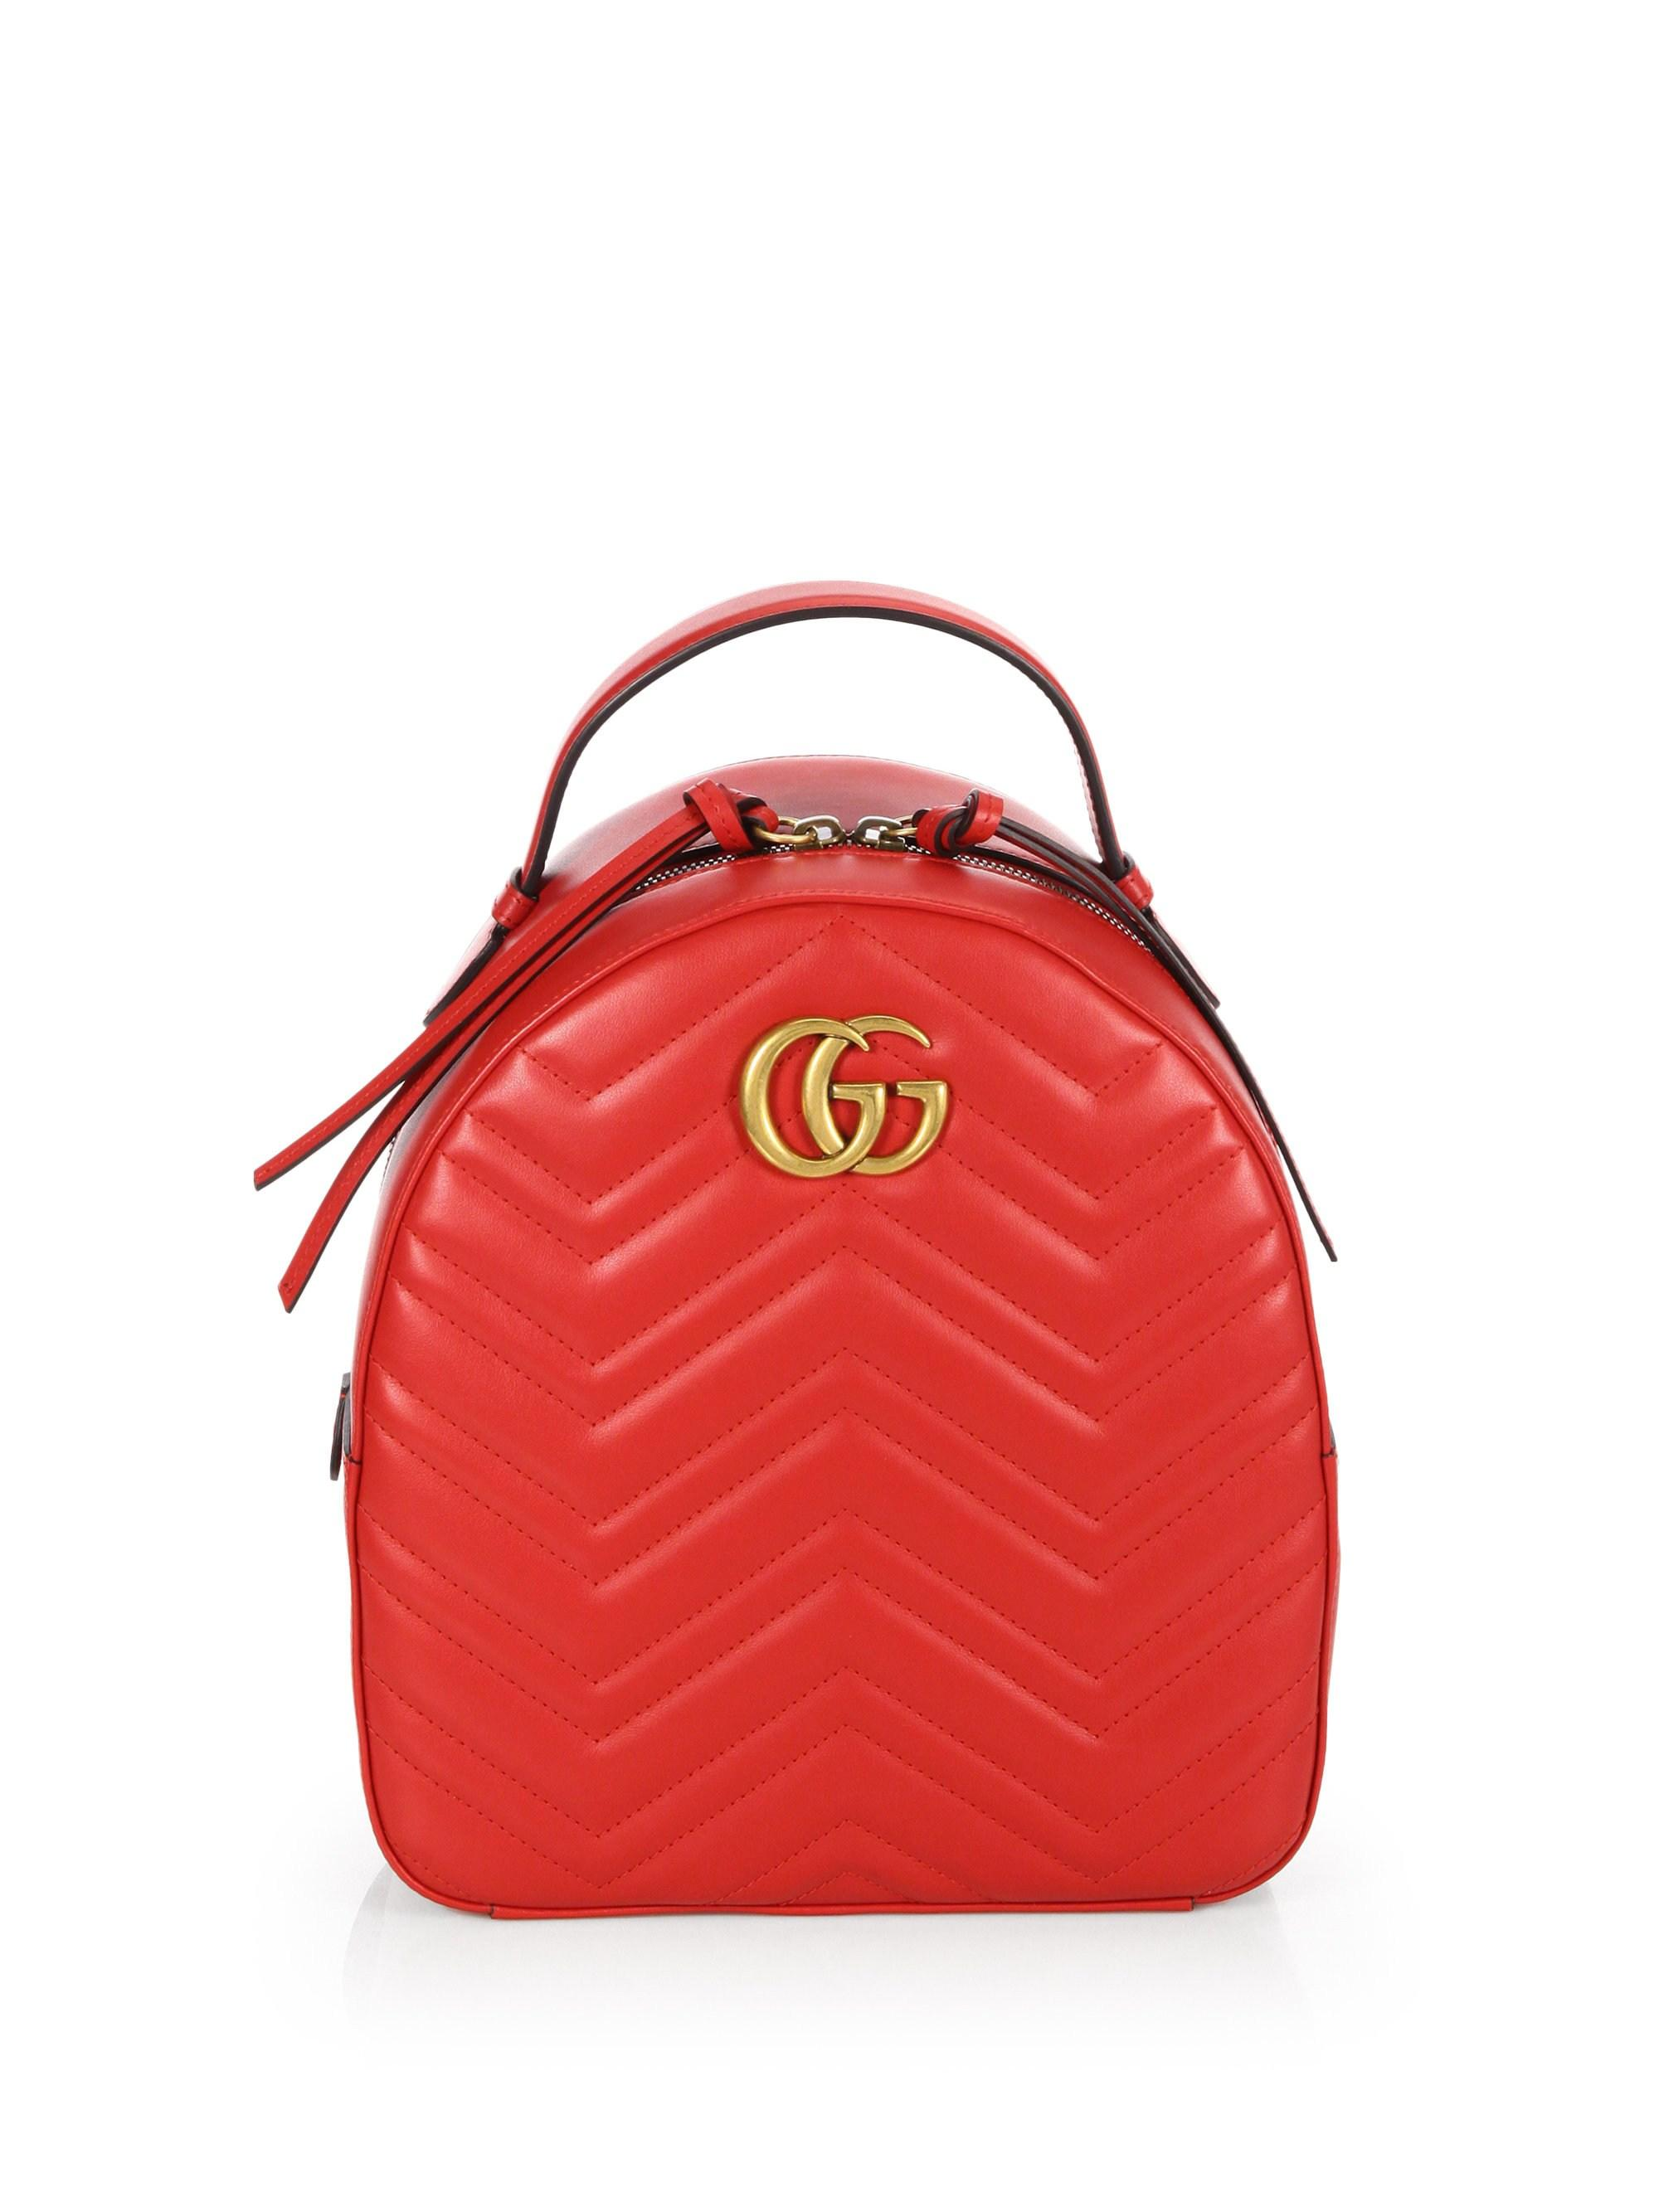 9343cc9155d2 Lyst - Gucci Women s GG Marmont Chevron Quilted Leather Mini ...